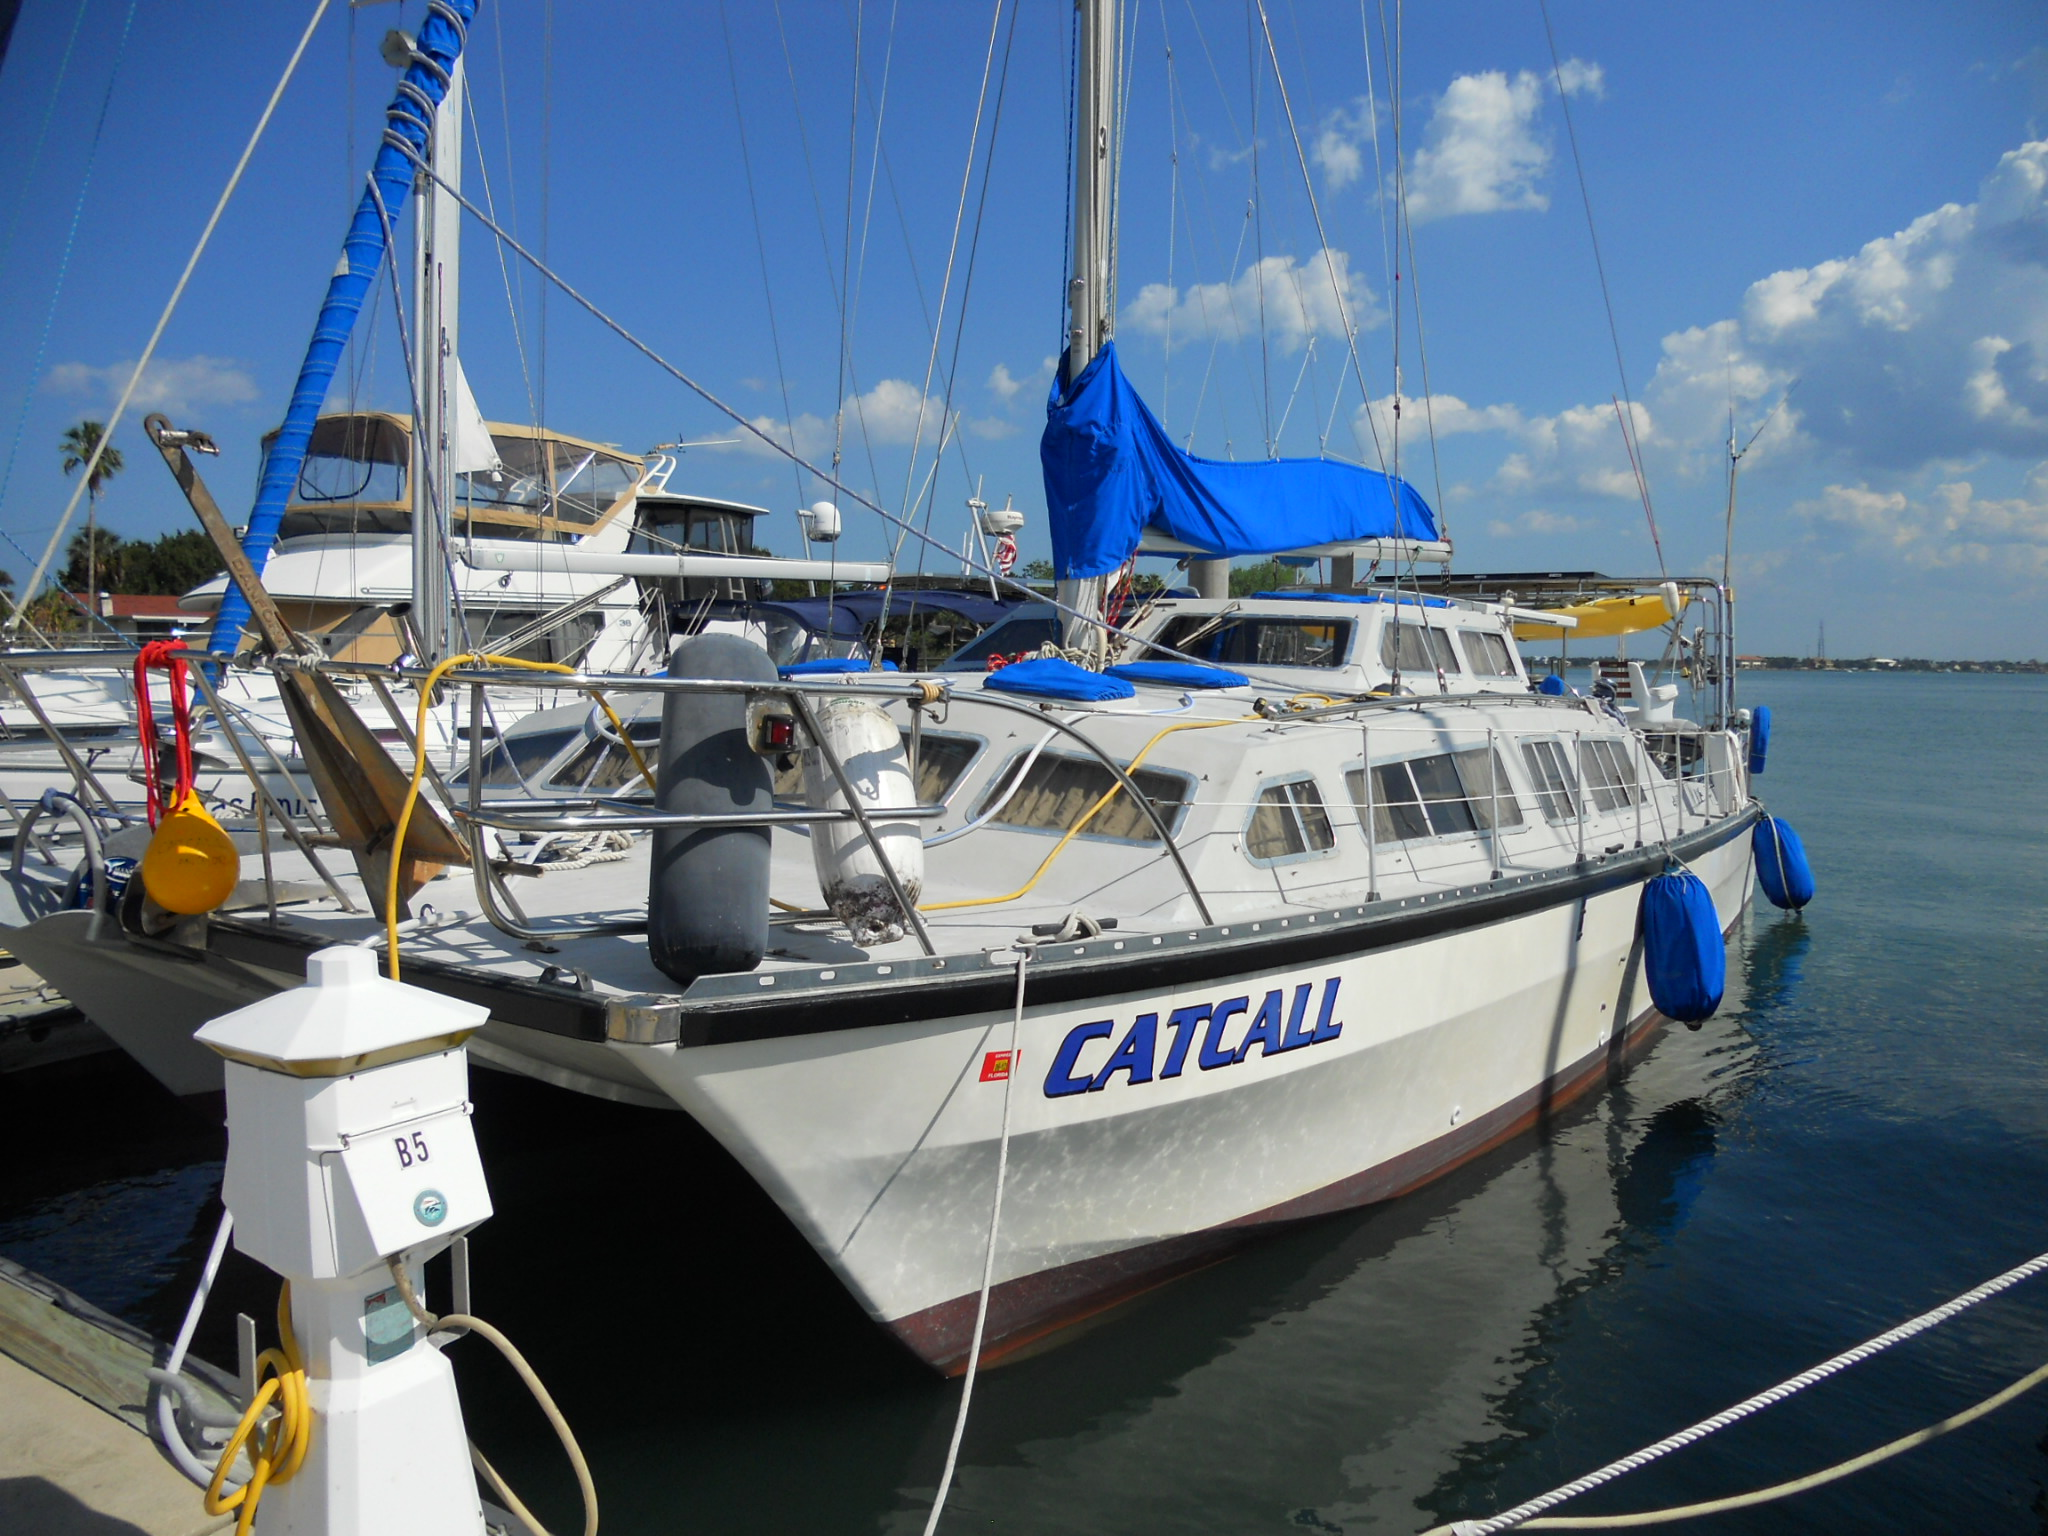 Preowned Sail Catamarans for Sale 1983 Catalac 12m